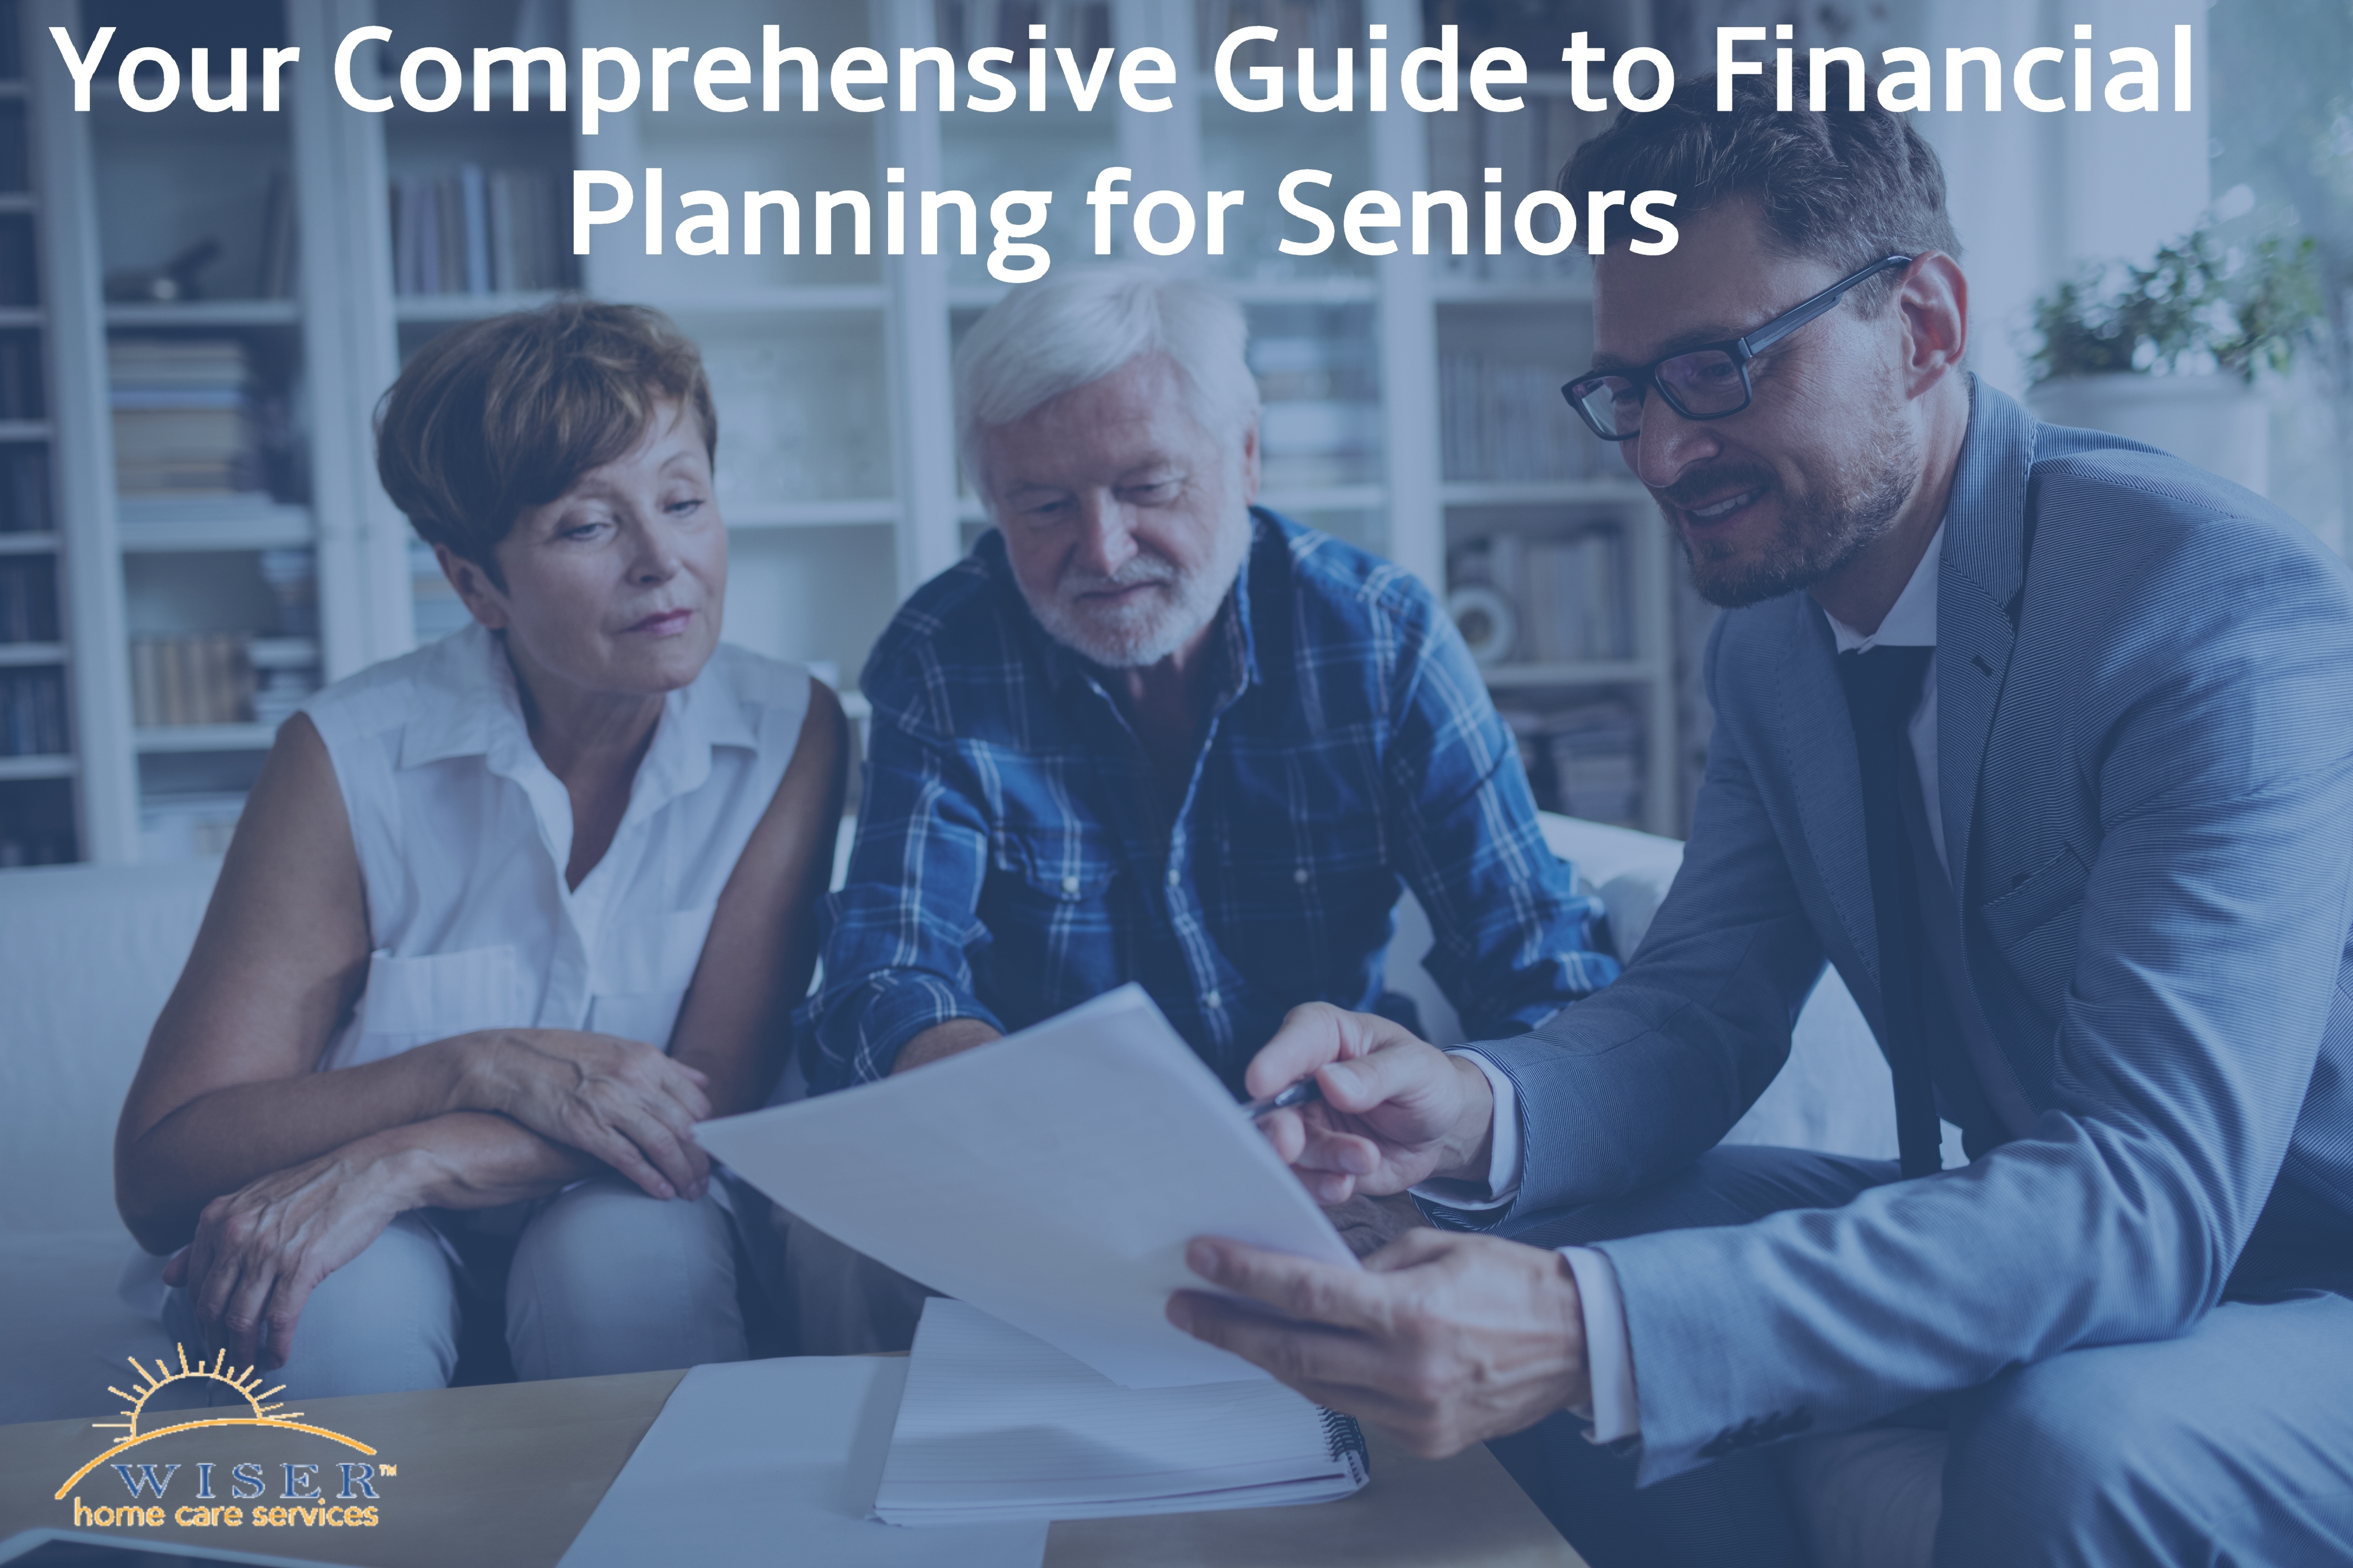 Your Comprehensive Guide to Financial Planning for Seniors